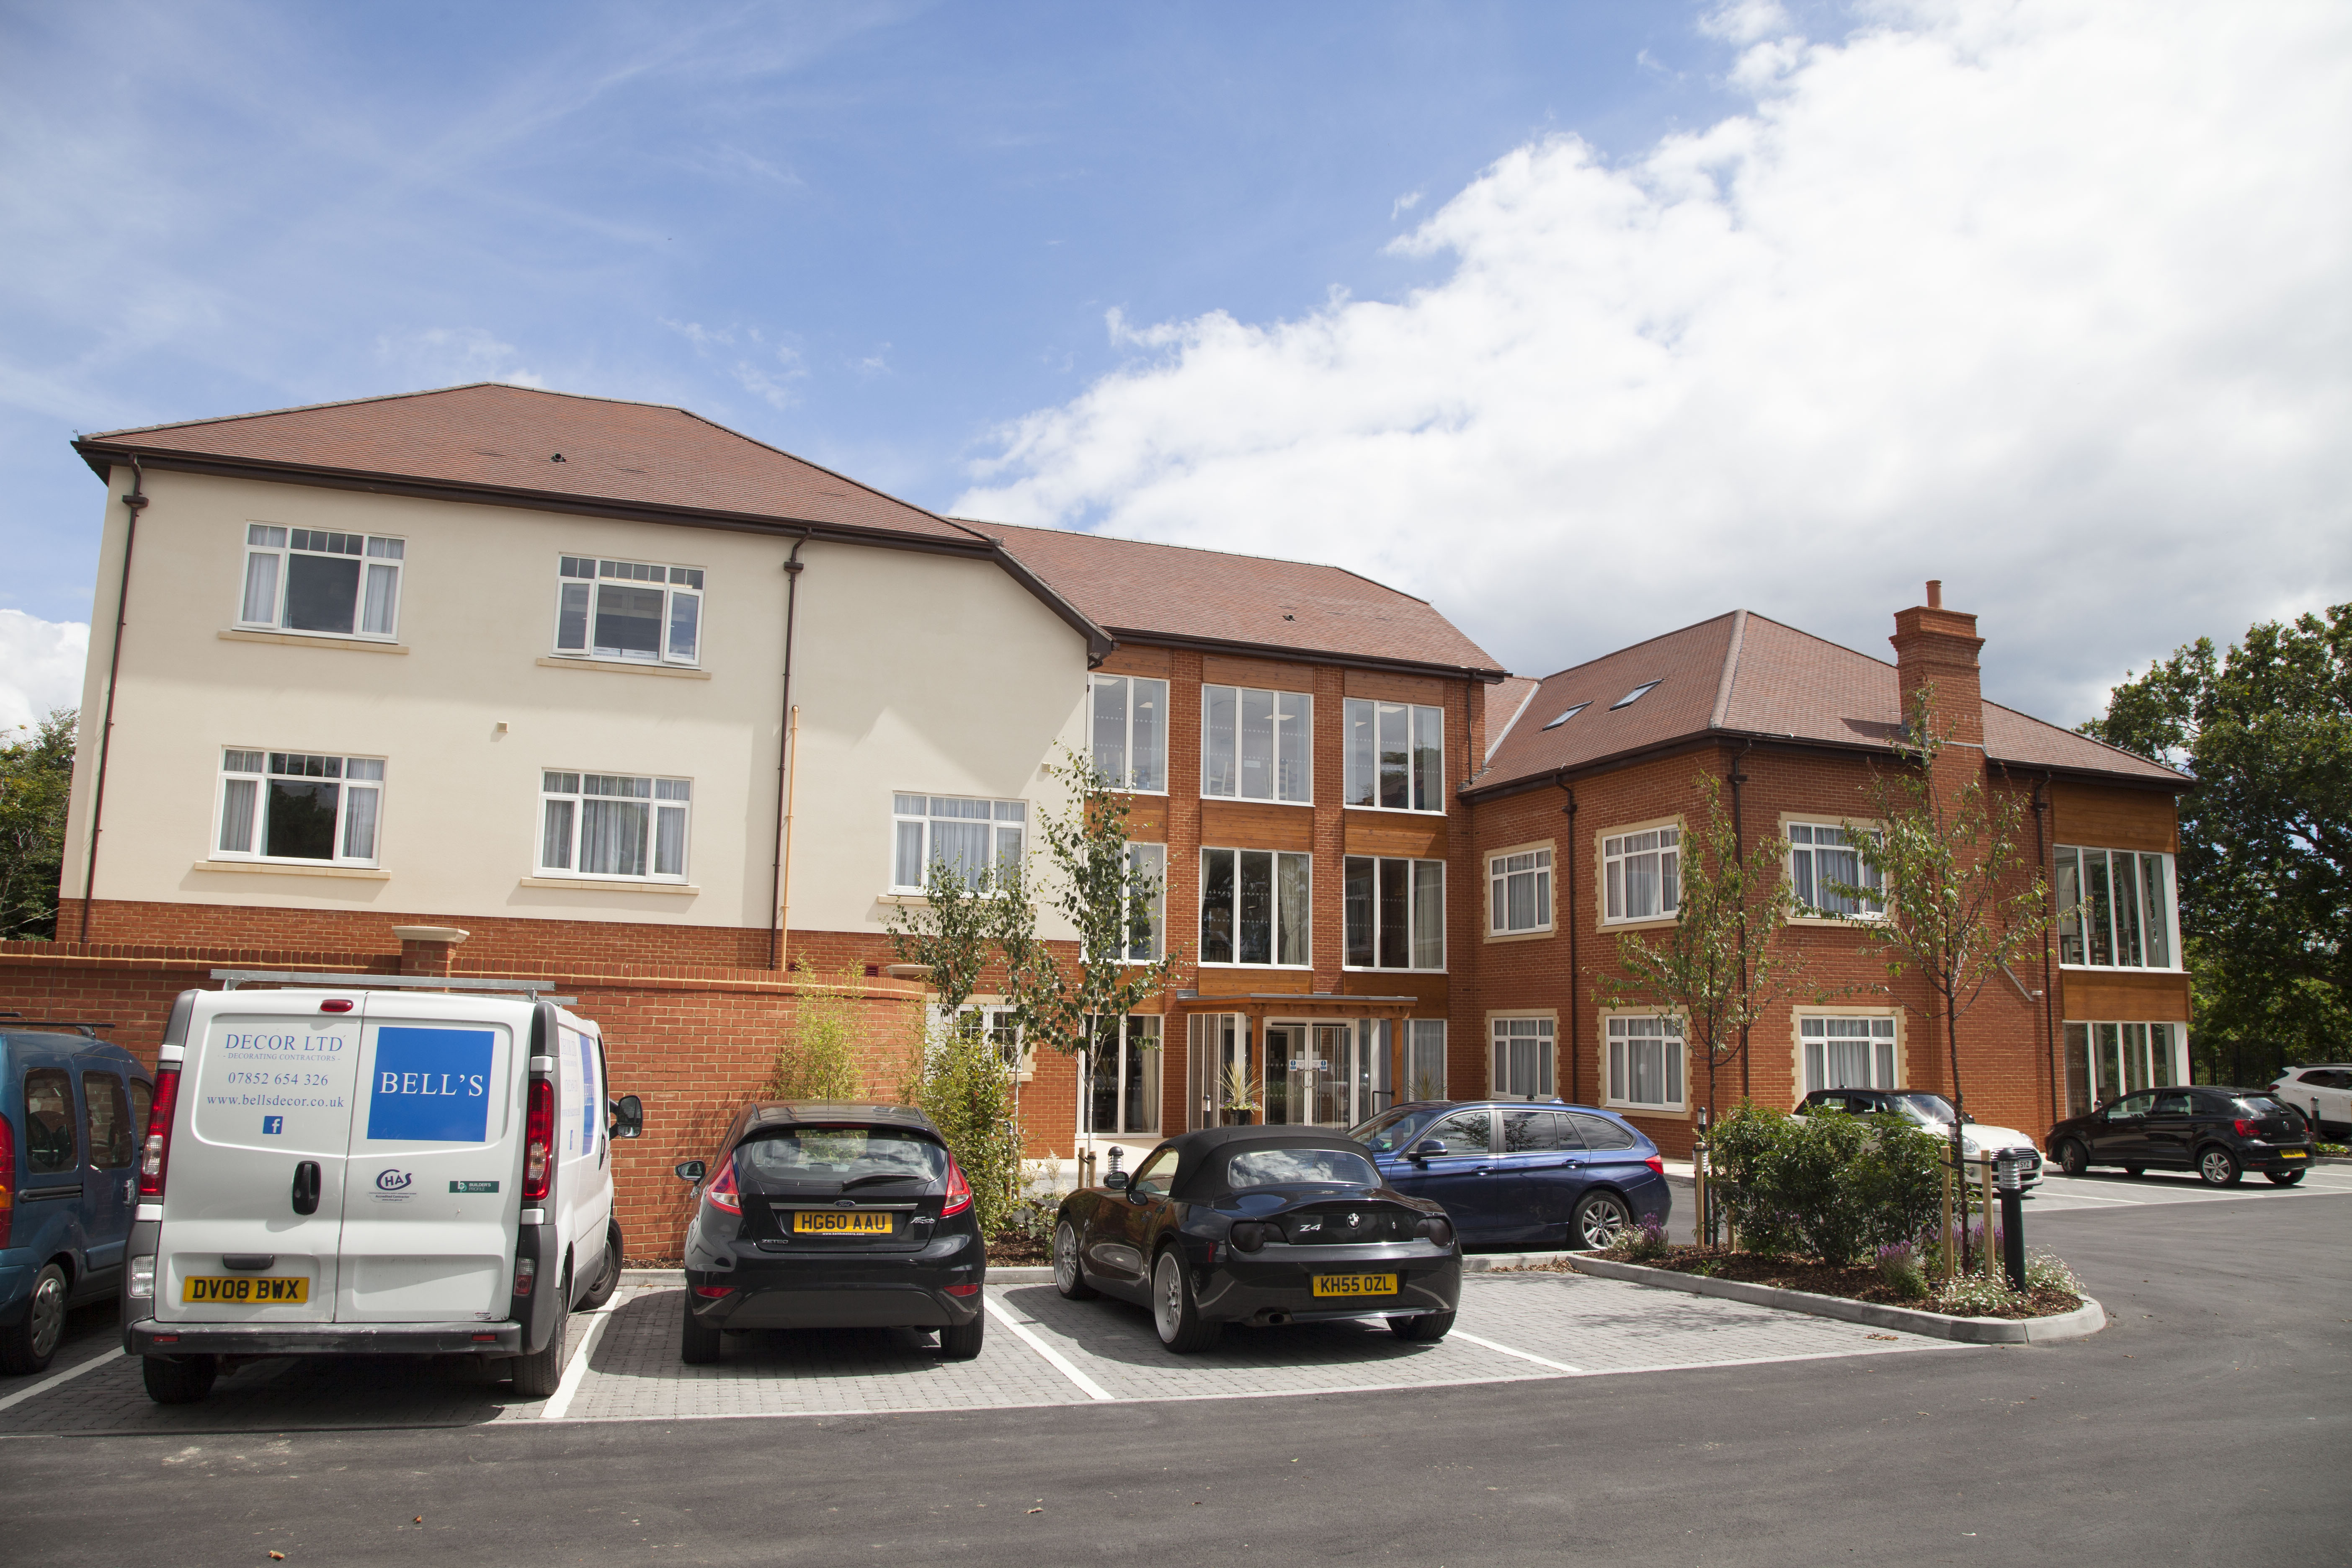 Great Oaks, a brand new residential, nursing and dementia specialist care home located in Bournemouth, has officially opened its doors.